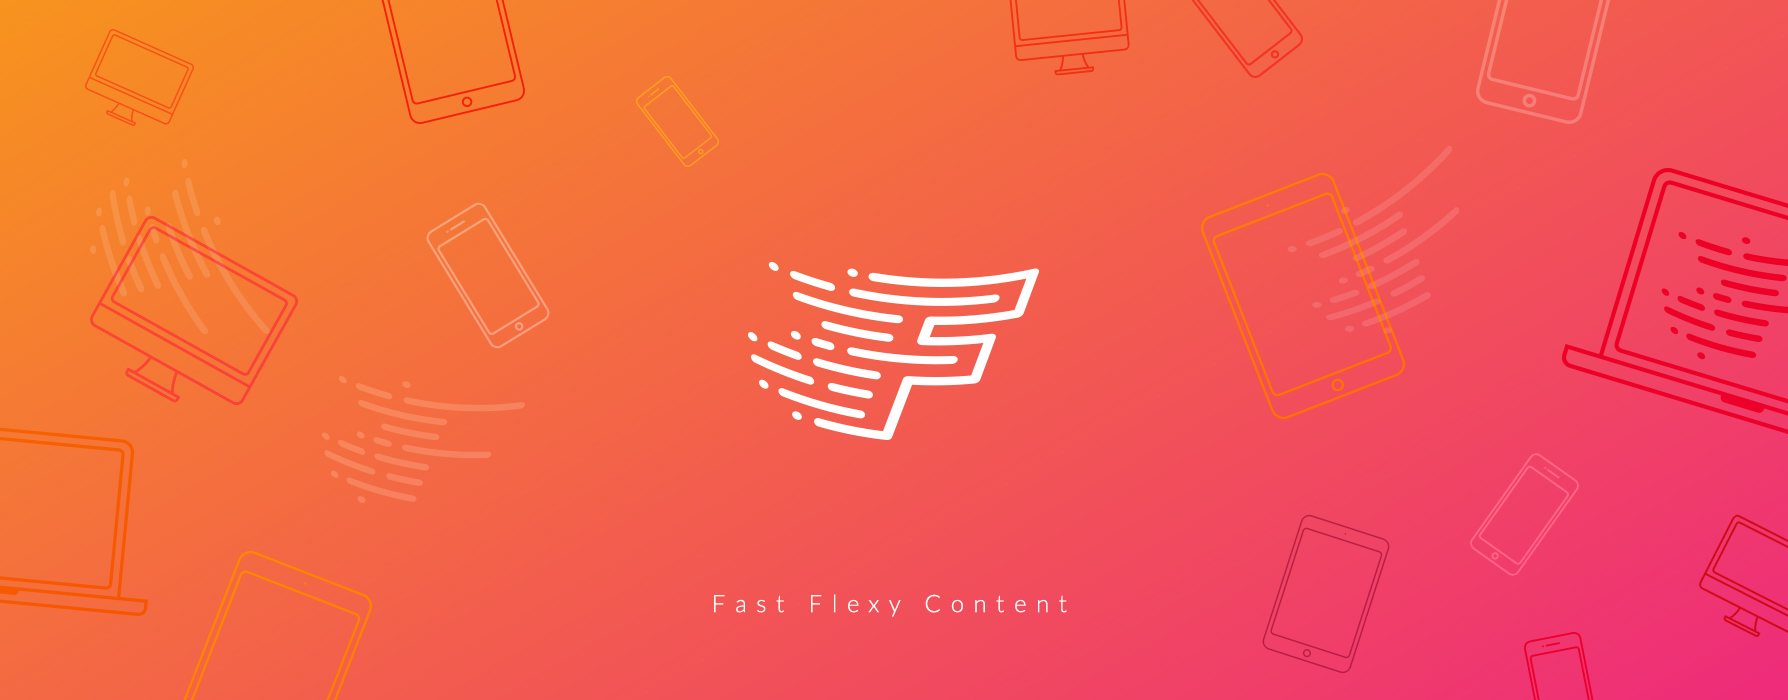 Fast Flexy Cover